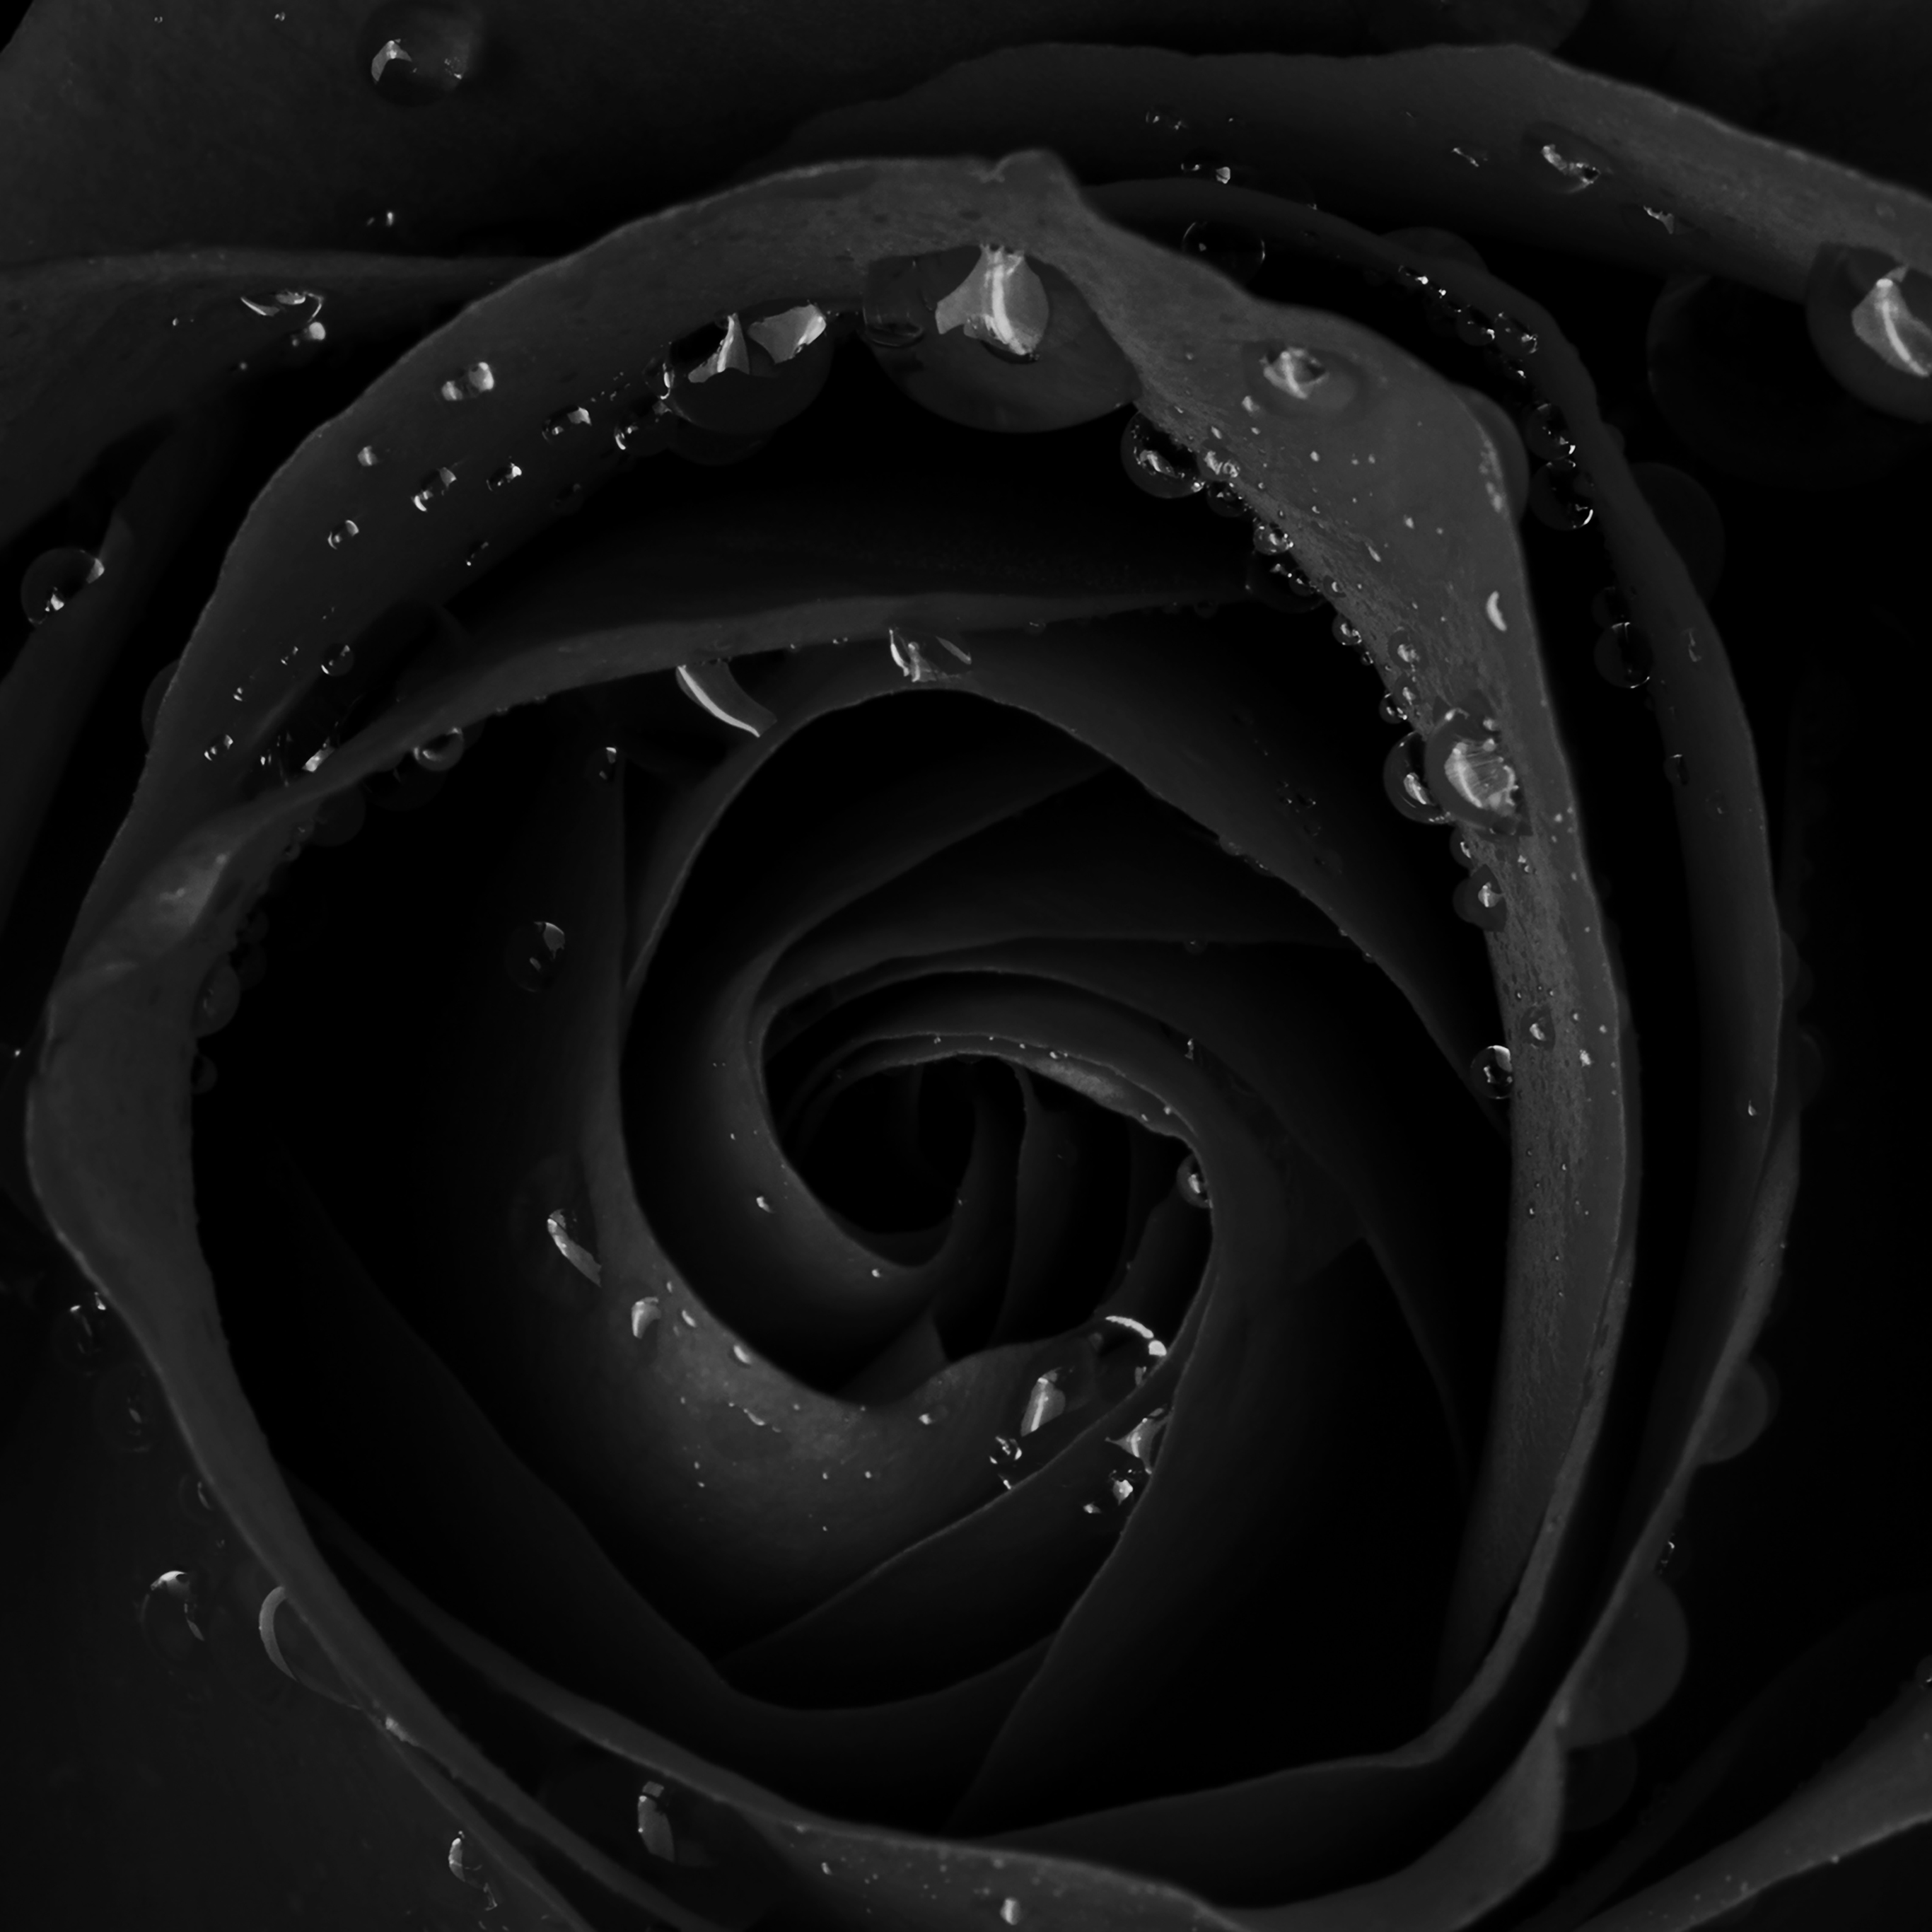 Mh83 Beautiful Dark Rose Flower Nature Wallpaper